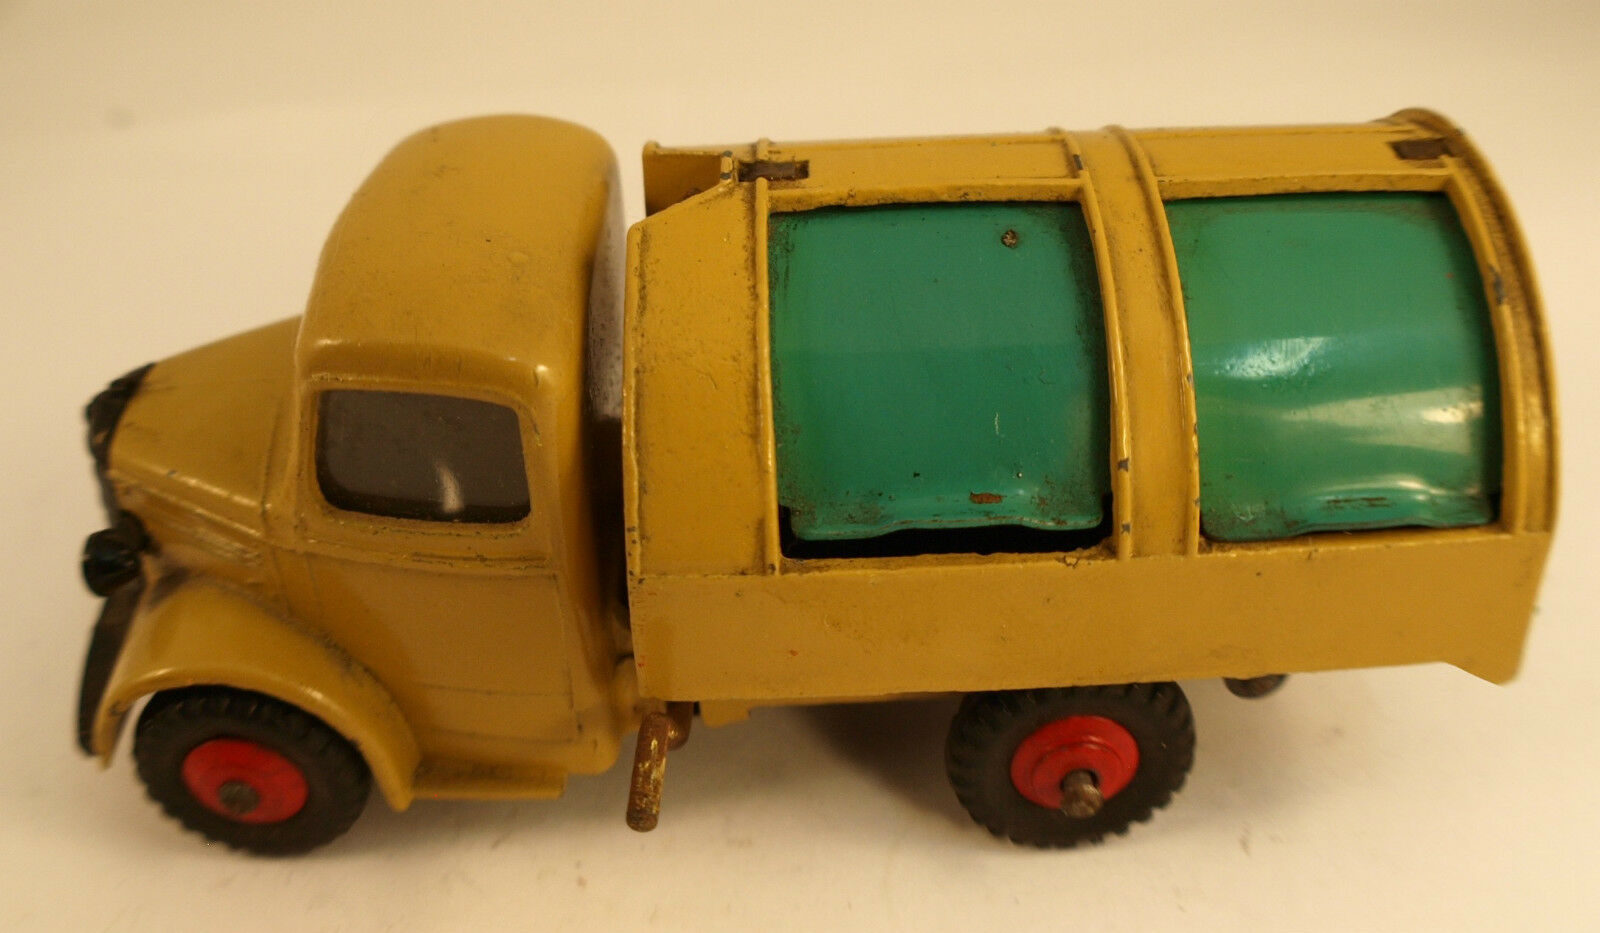 Dinky Toys GB 252 camion Bedford refuse wagon truck version avec vitres